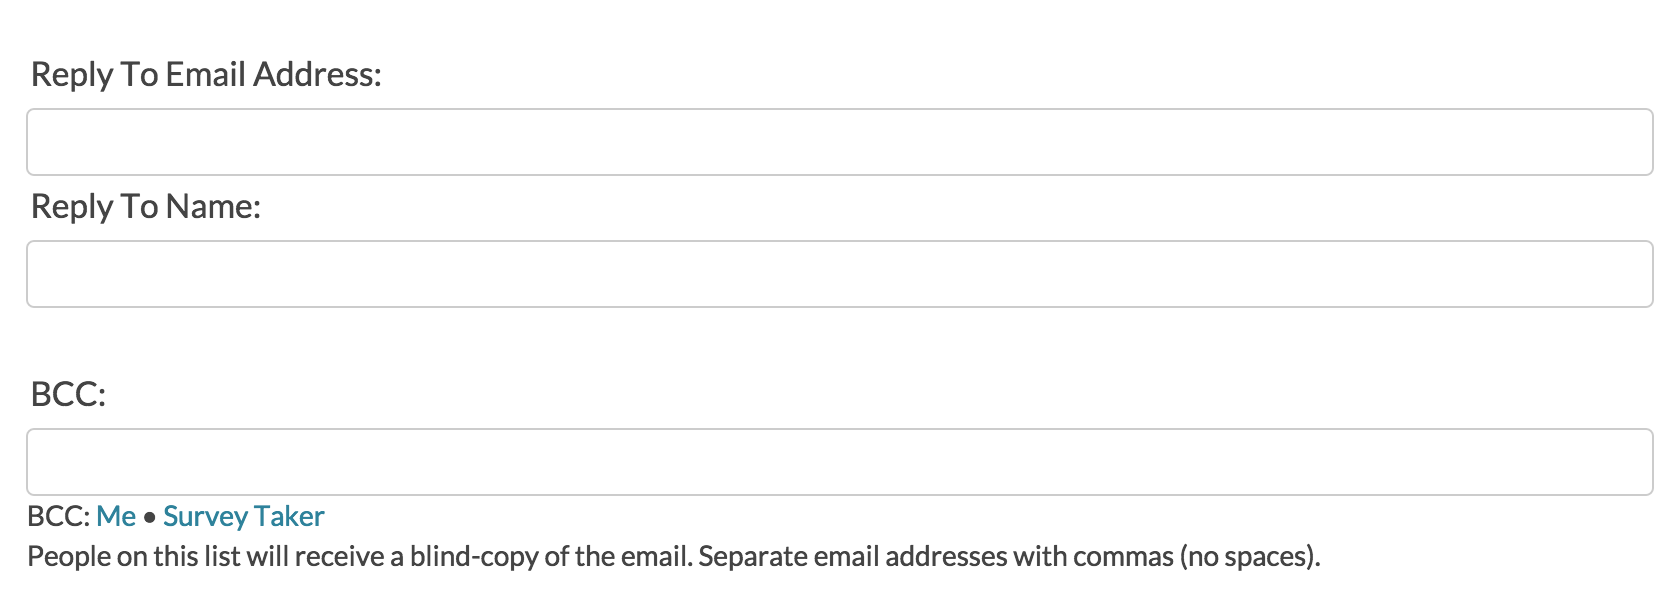 send email action send an autoresponse email surveygizmo help if an email fails to send in this list all emails that follow it will also fail so make sure to triple check your addresses